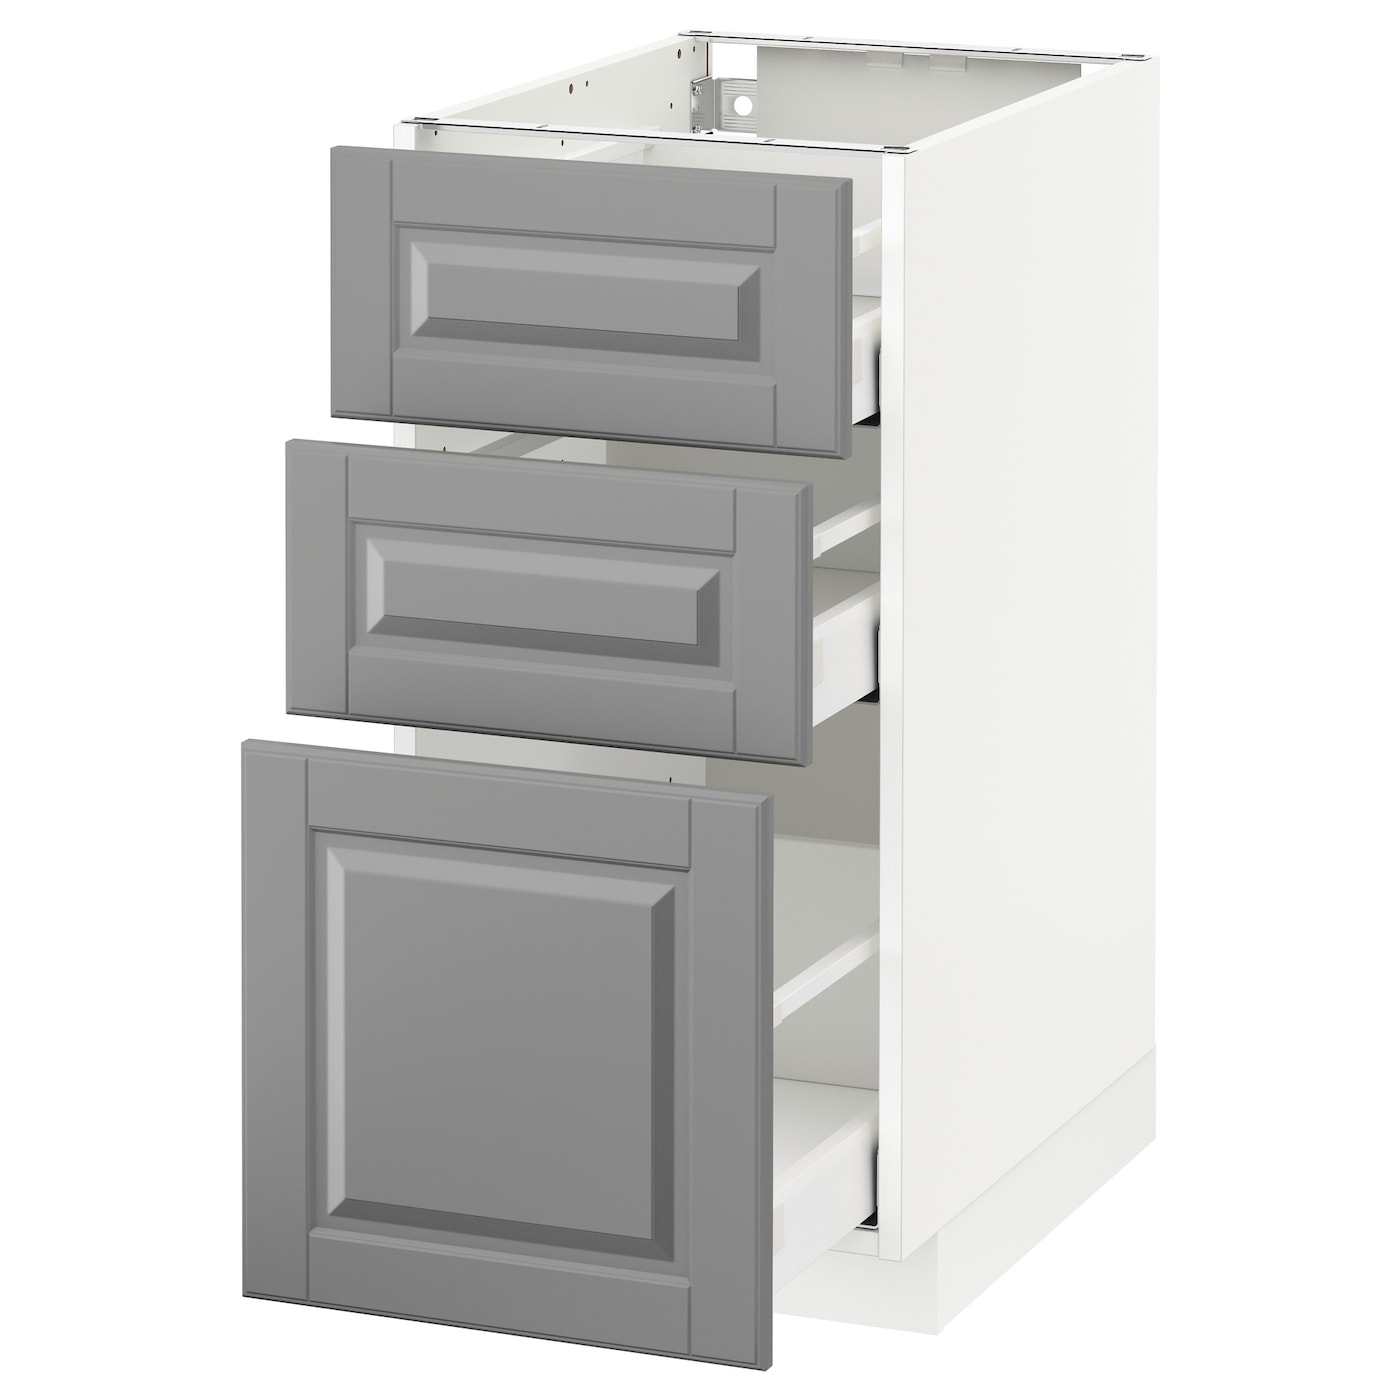 metod maximera base cabinet with 3 drawers white bodbyn grey 40 x 60 cm ikea. Black Bedroom Furniture Sets. Home Design Ideas